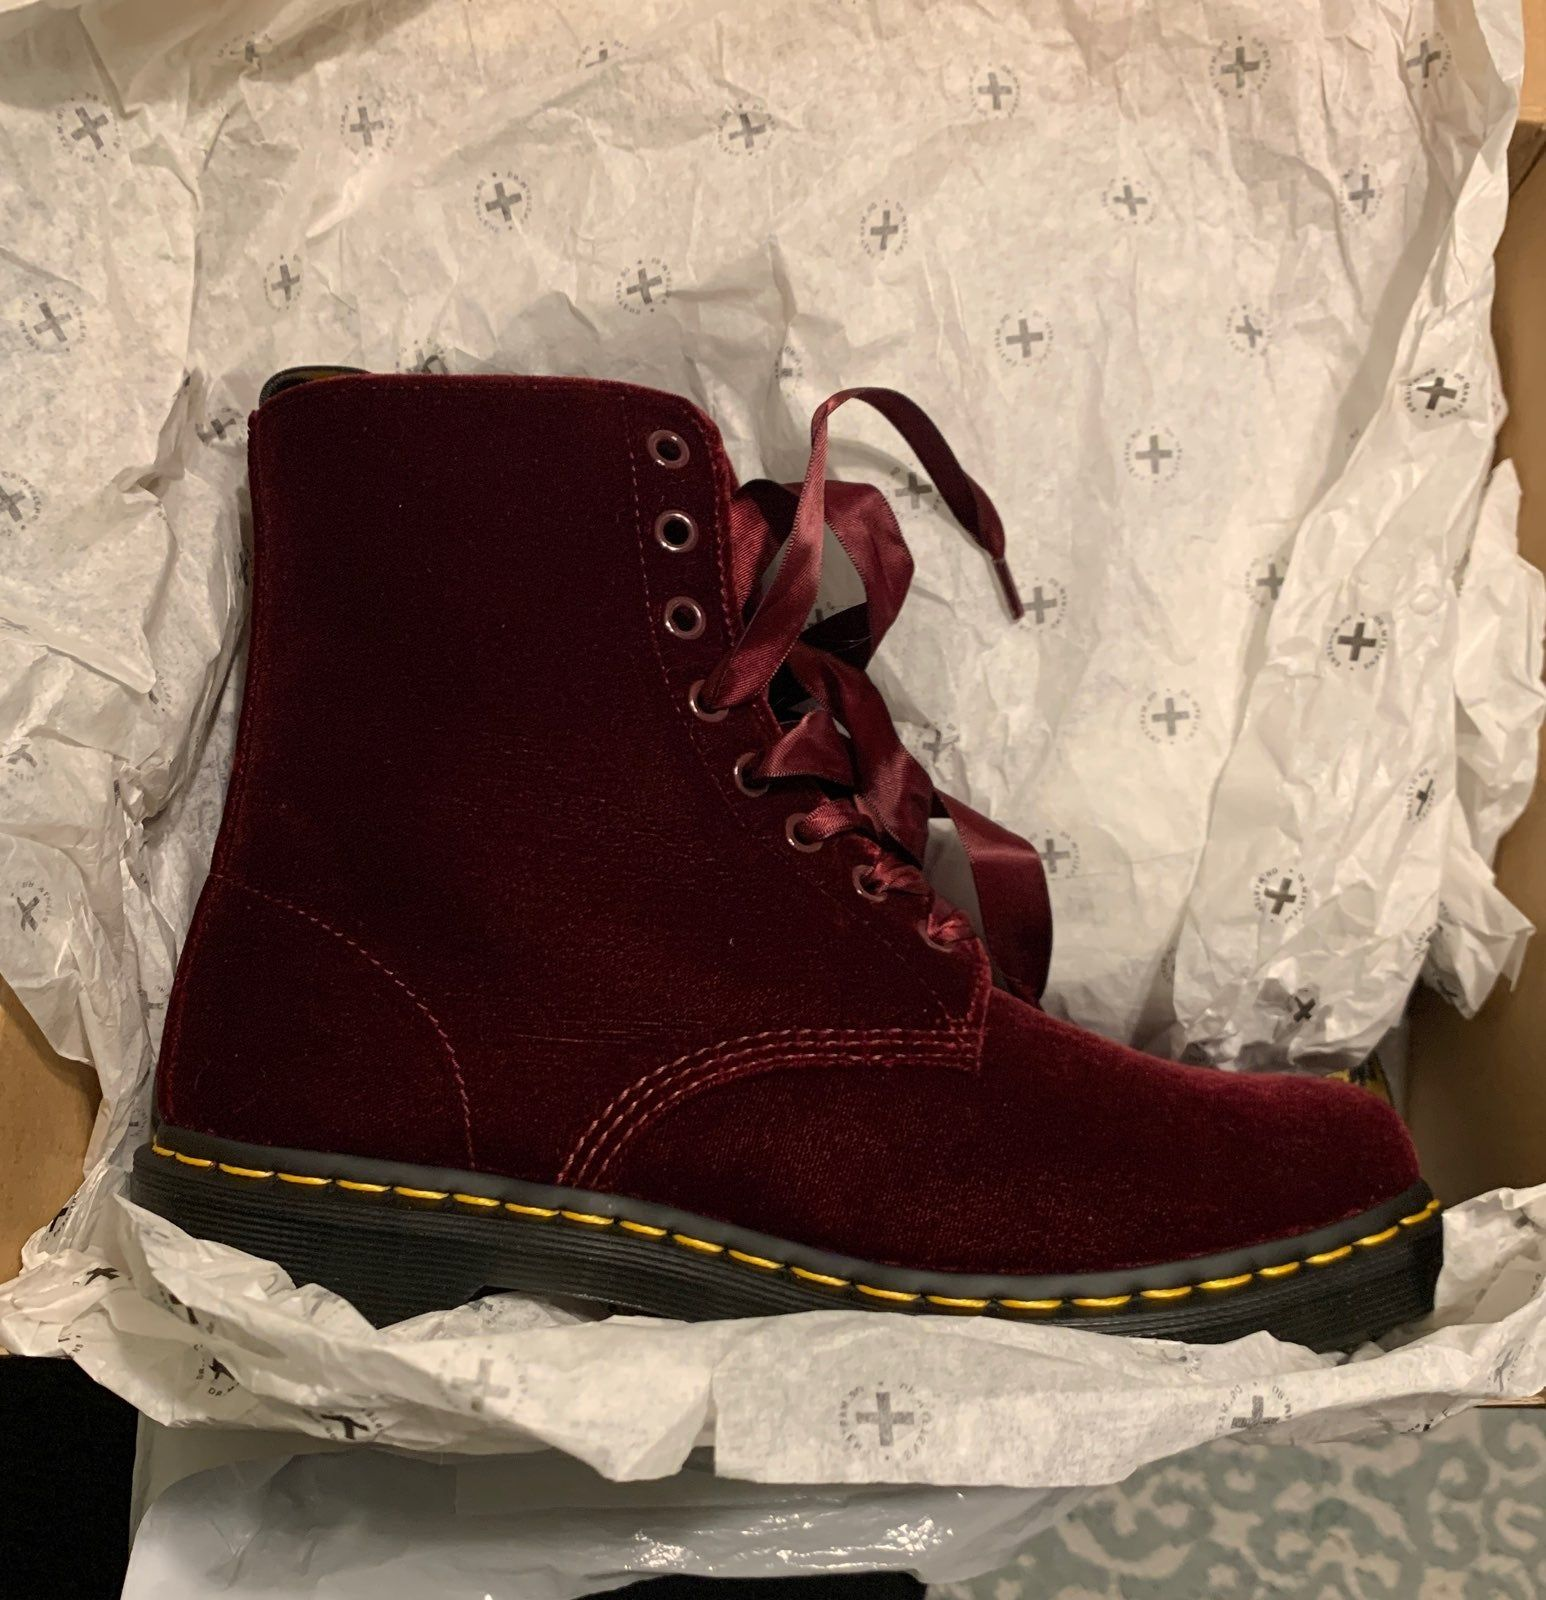 Brand new, never used. Still in box. Red velvet Dr Martens